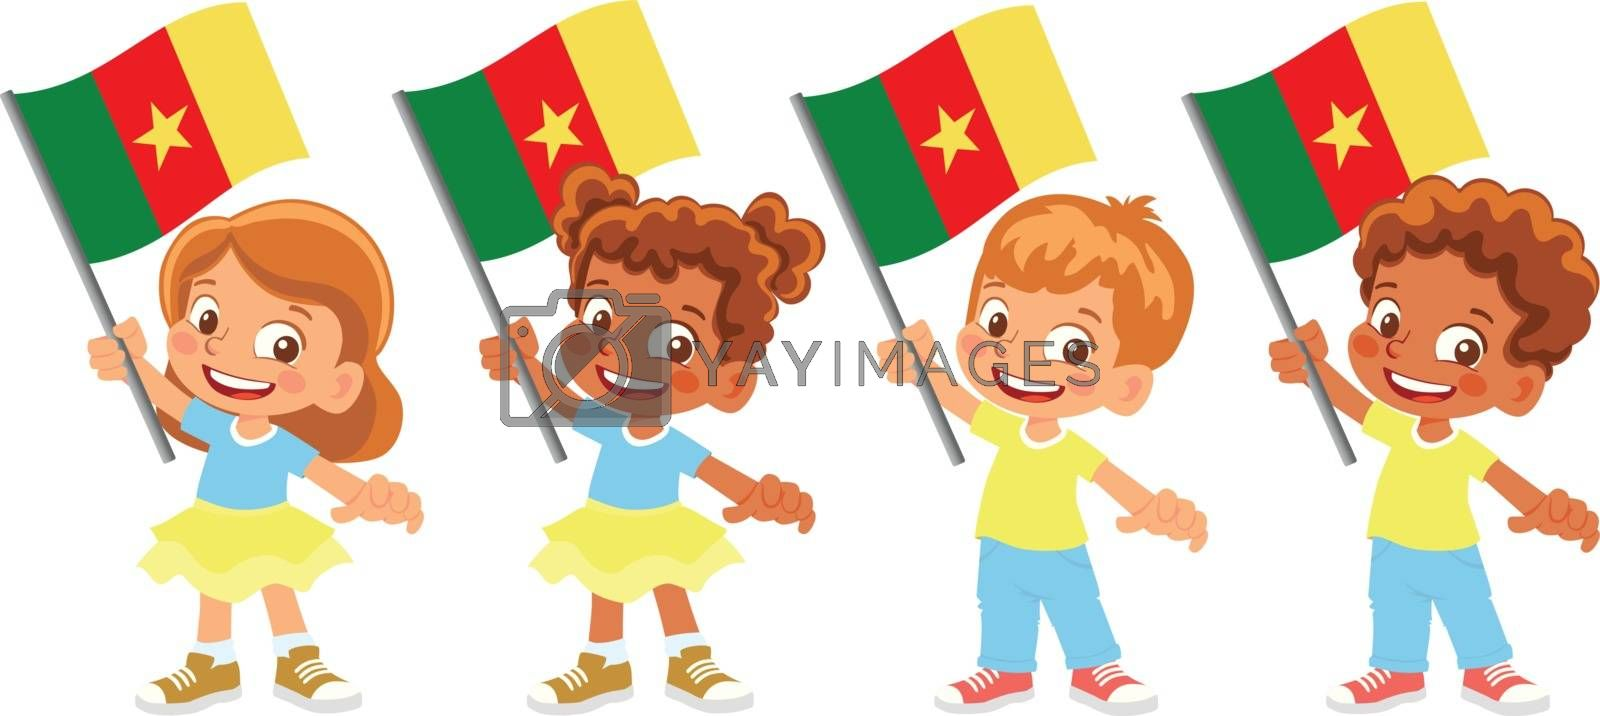 Cameroon flag in hand. Children holding flag. National flag of Cameroon vector